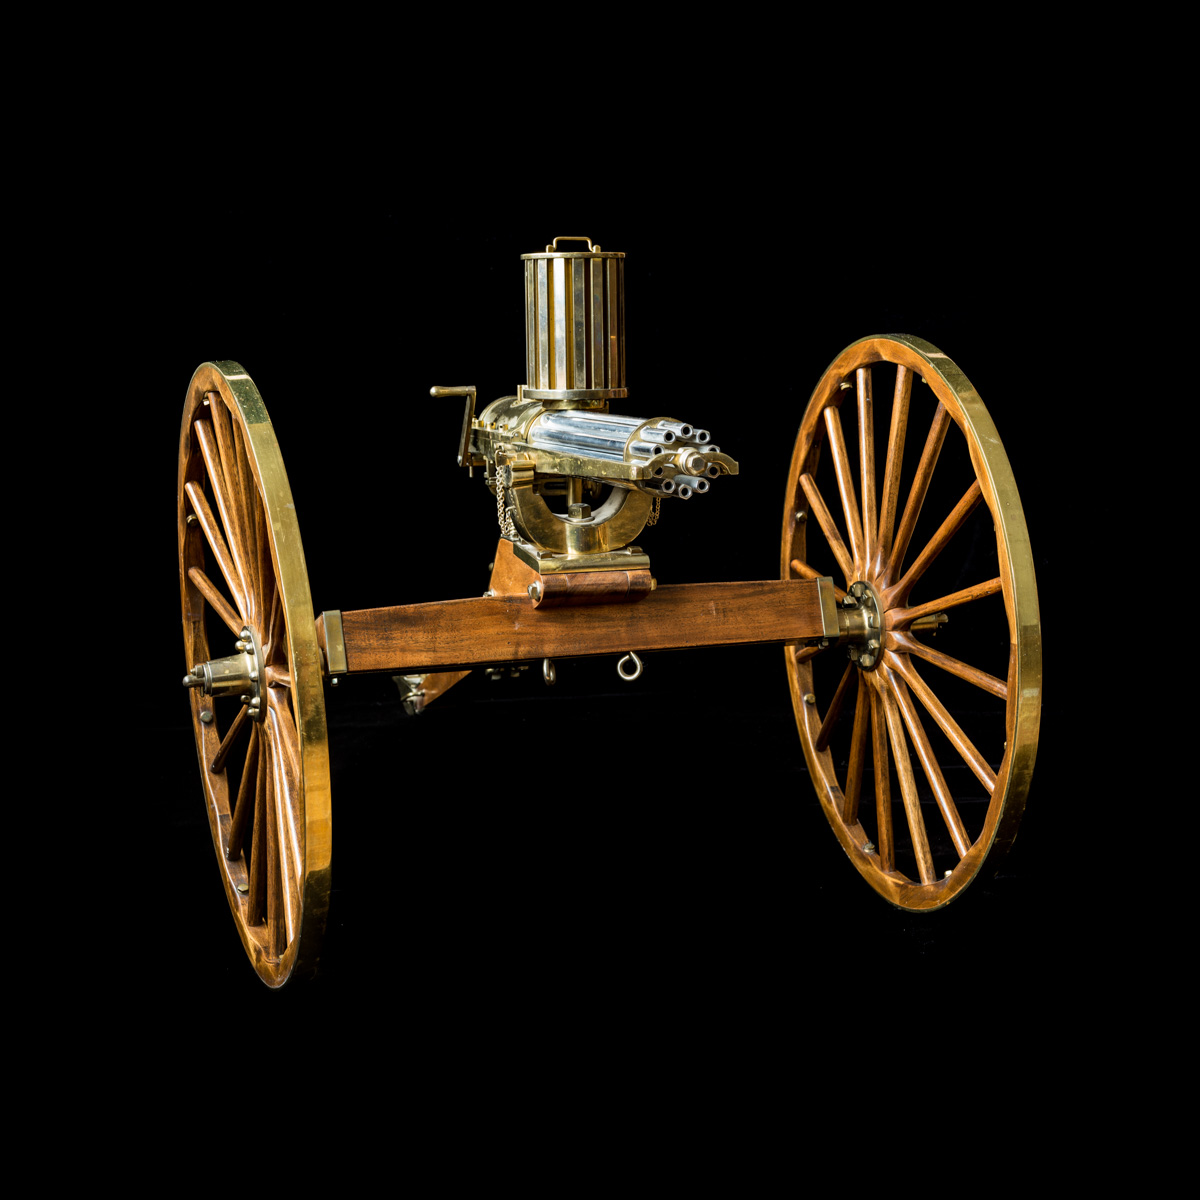 Gatling Gun 1-3rd size model-3